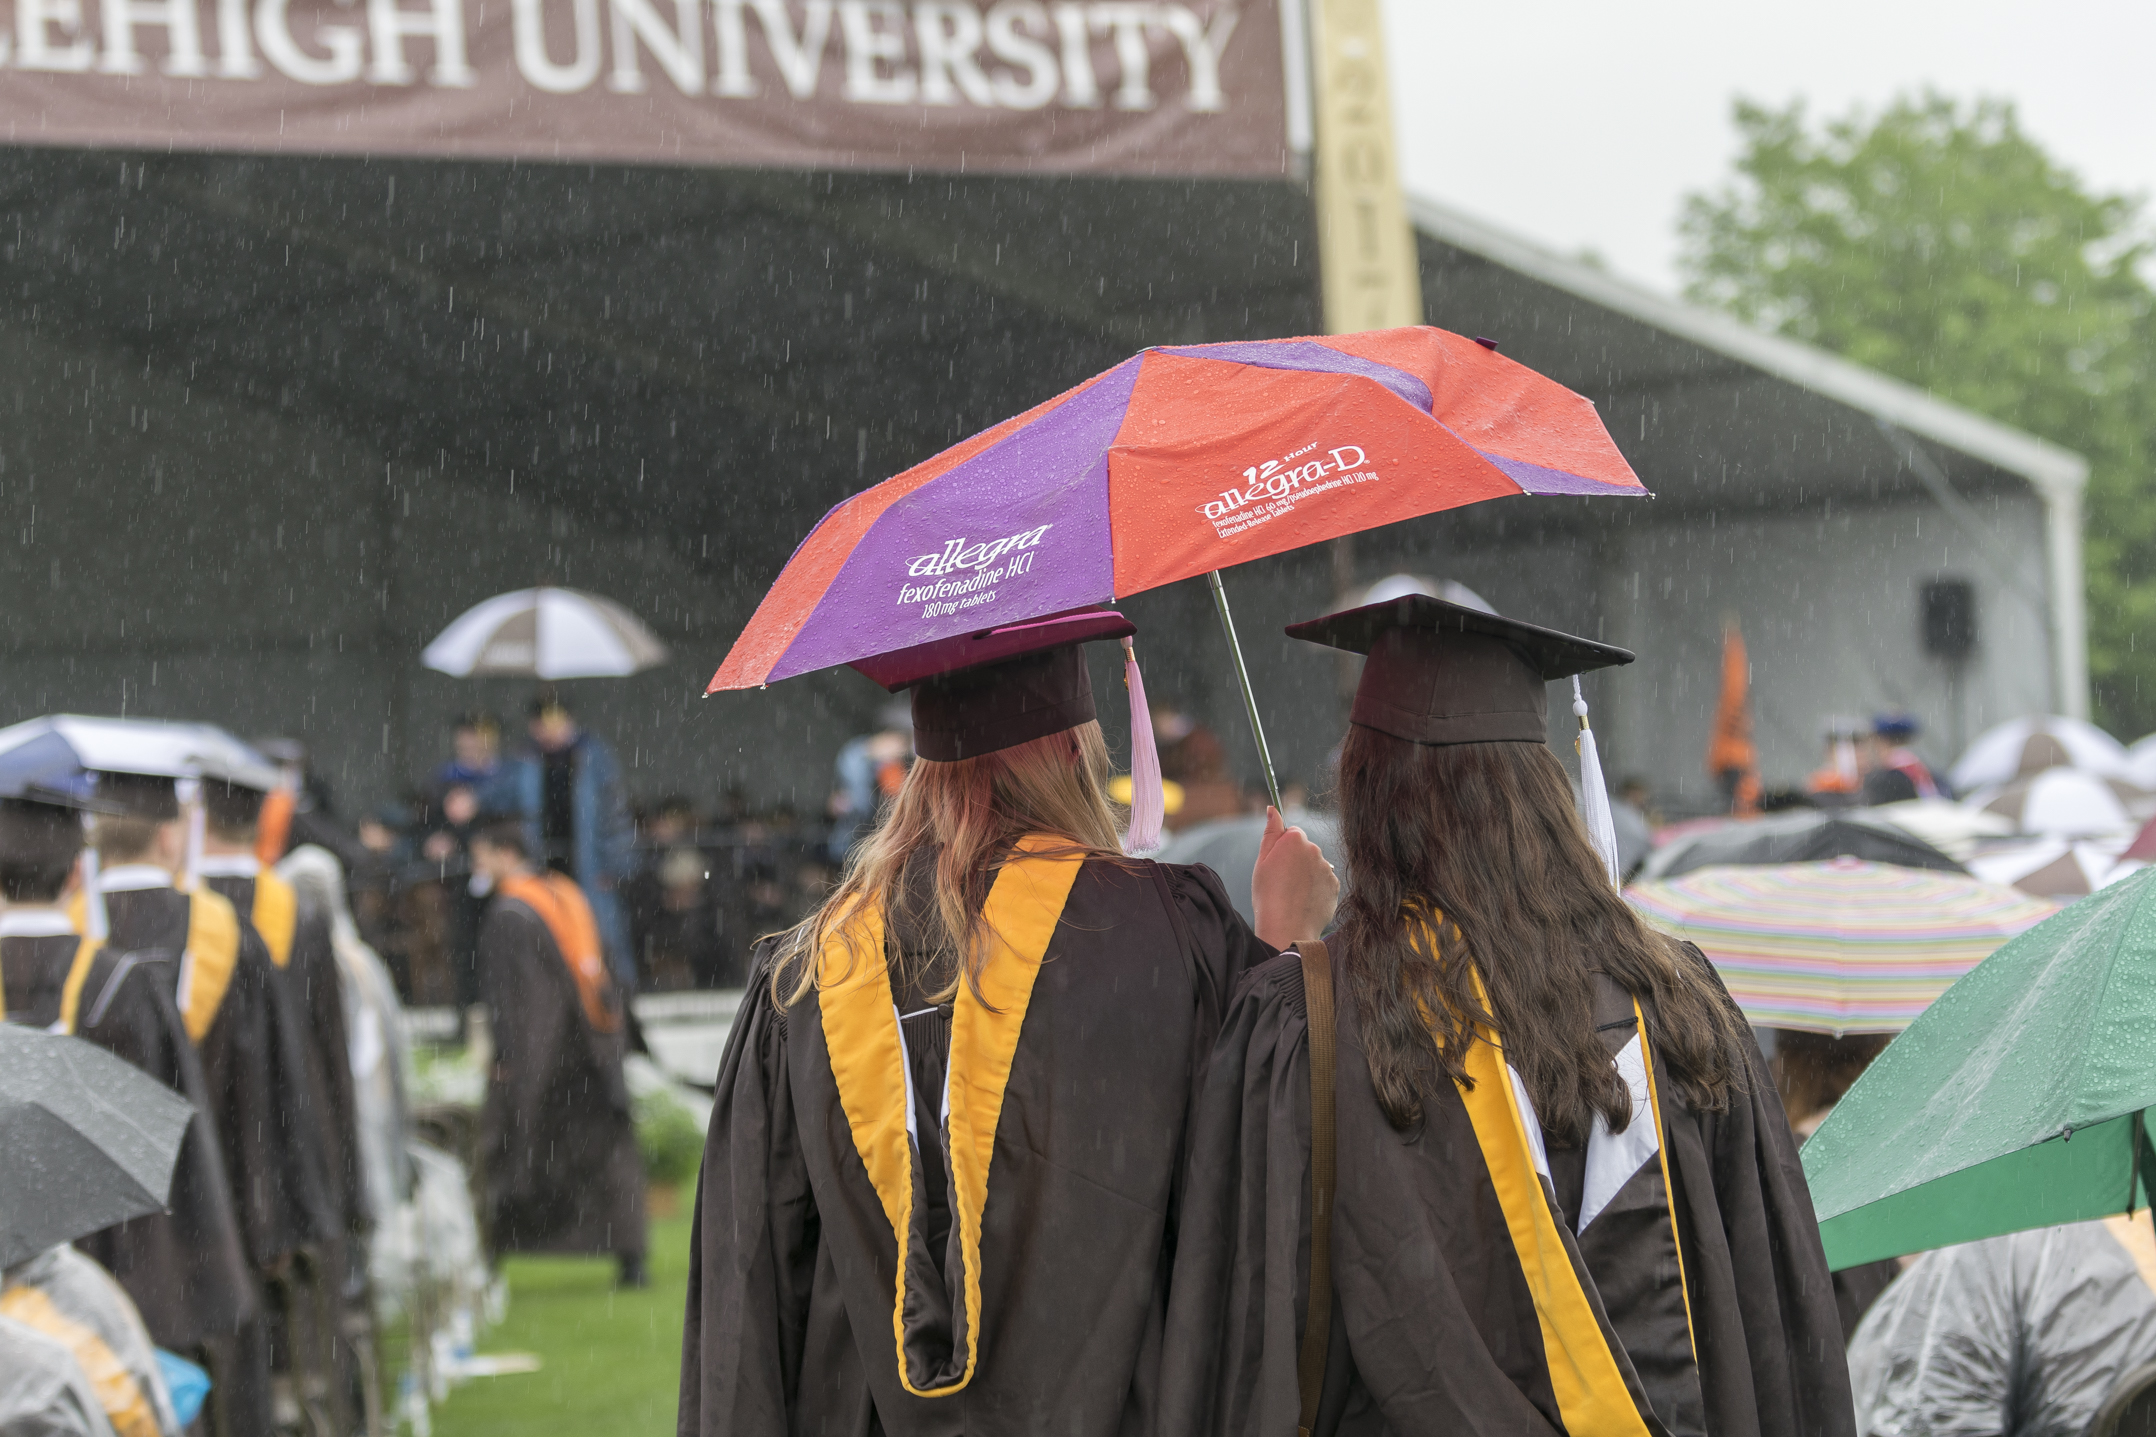 Two students huddle under an umbrella during commencement Monday, May 22, 2017, in Goodman Stadium. The rain began after Stephanie Ruhle's commencement address and slowed down toward the end of the ceremony. (Roshan Giyanani/B&W Staff)